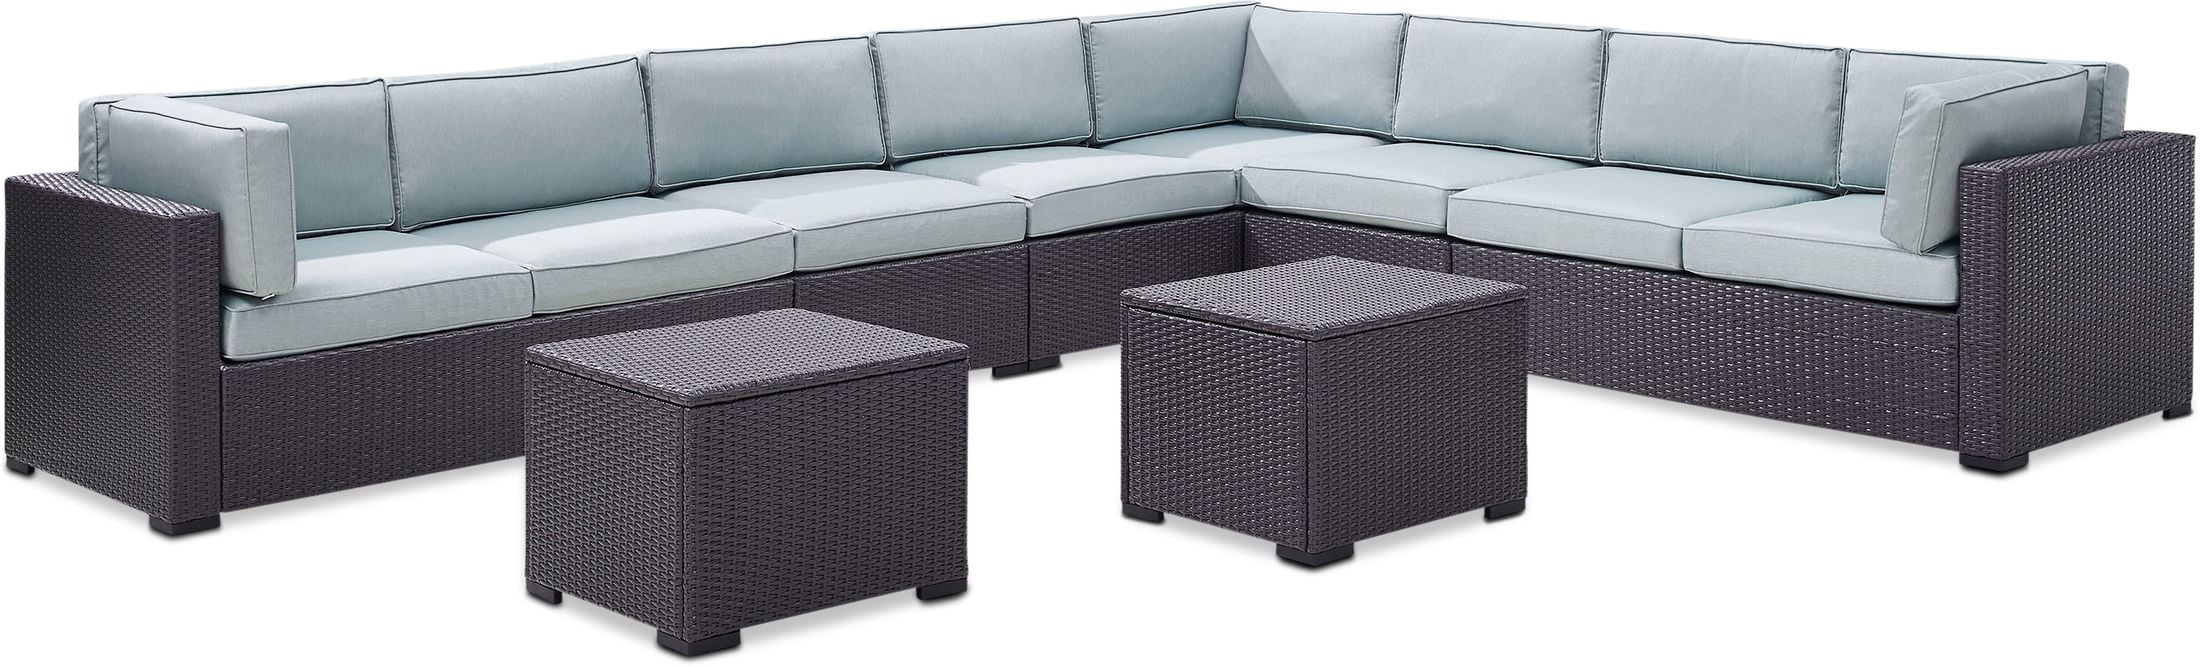 Outdoor Furniture - Isla 5-Piece Outdoor Sectional and 2 Coffee Tables Set